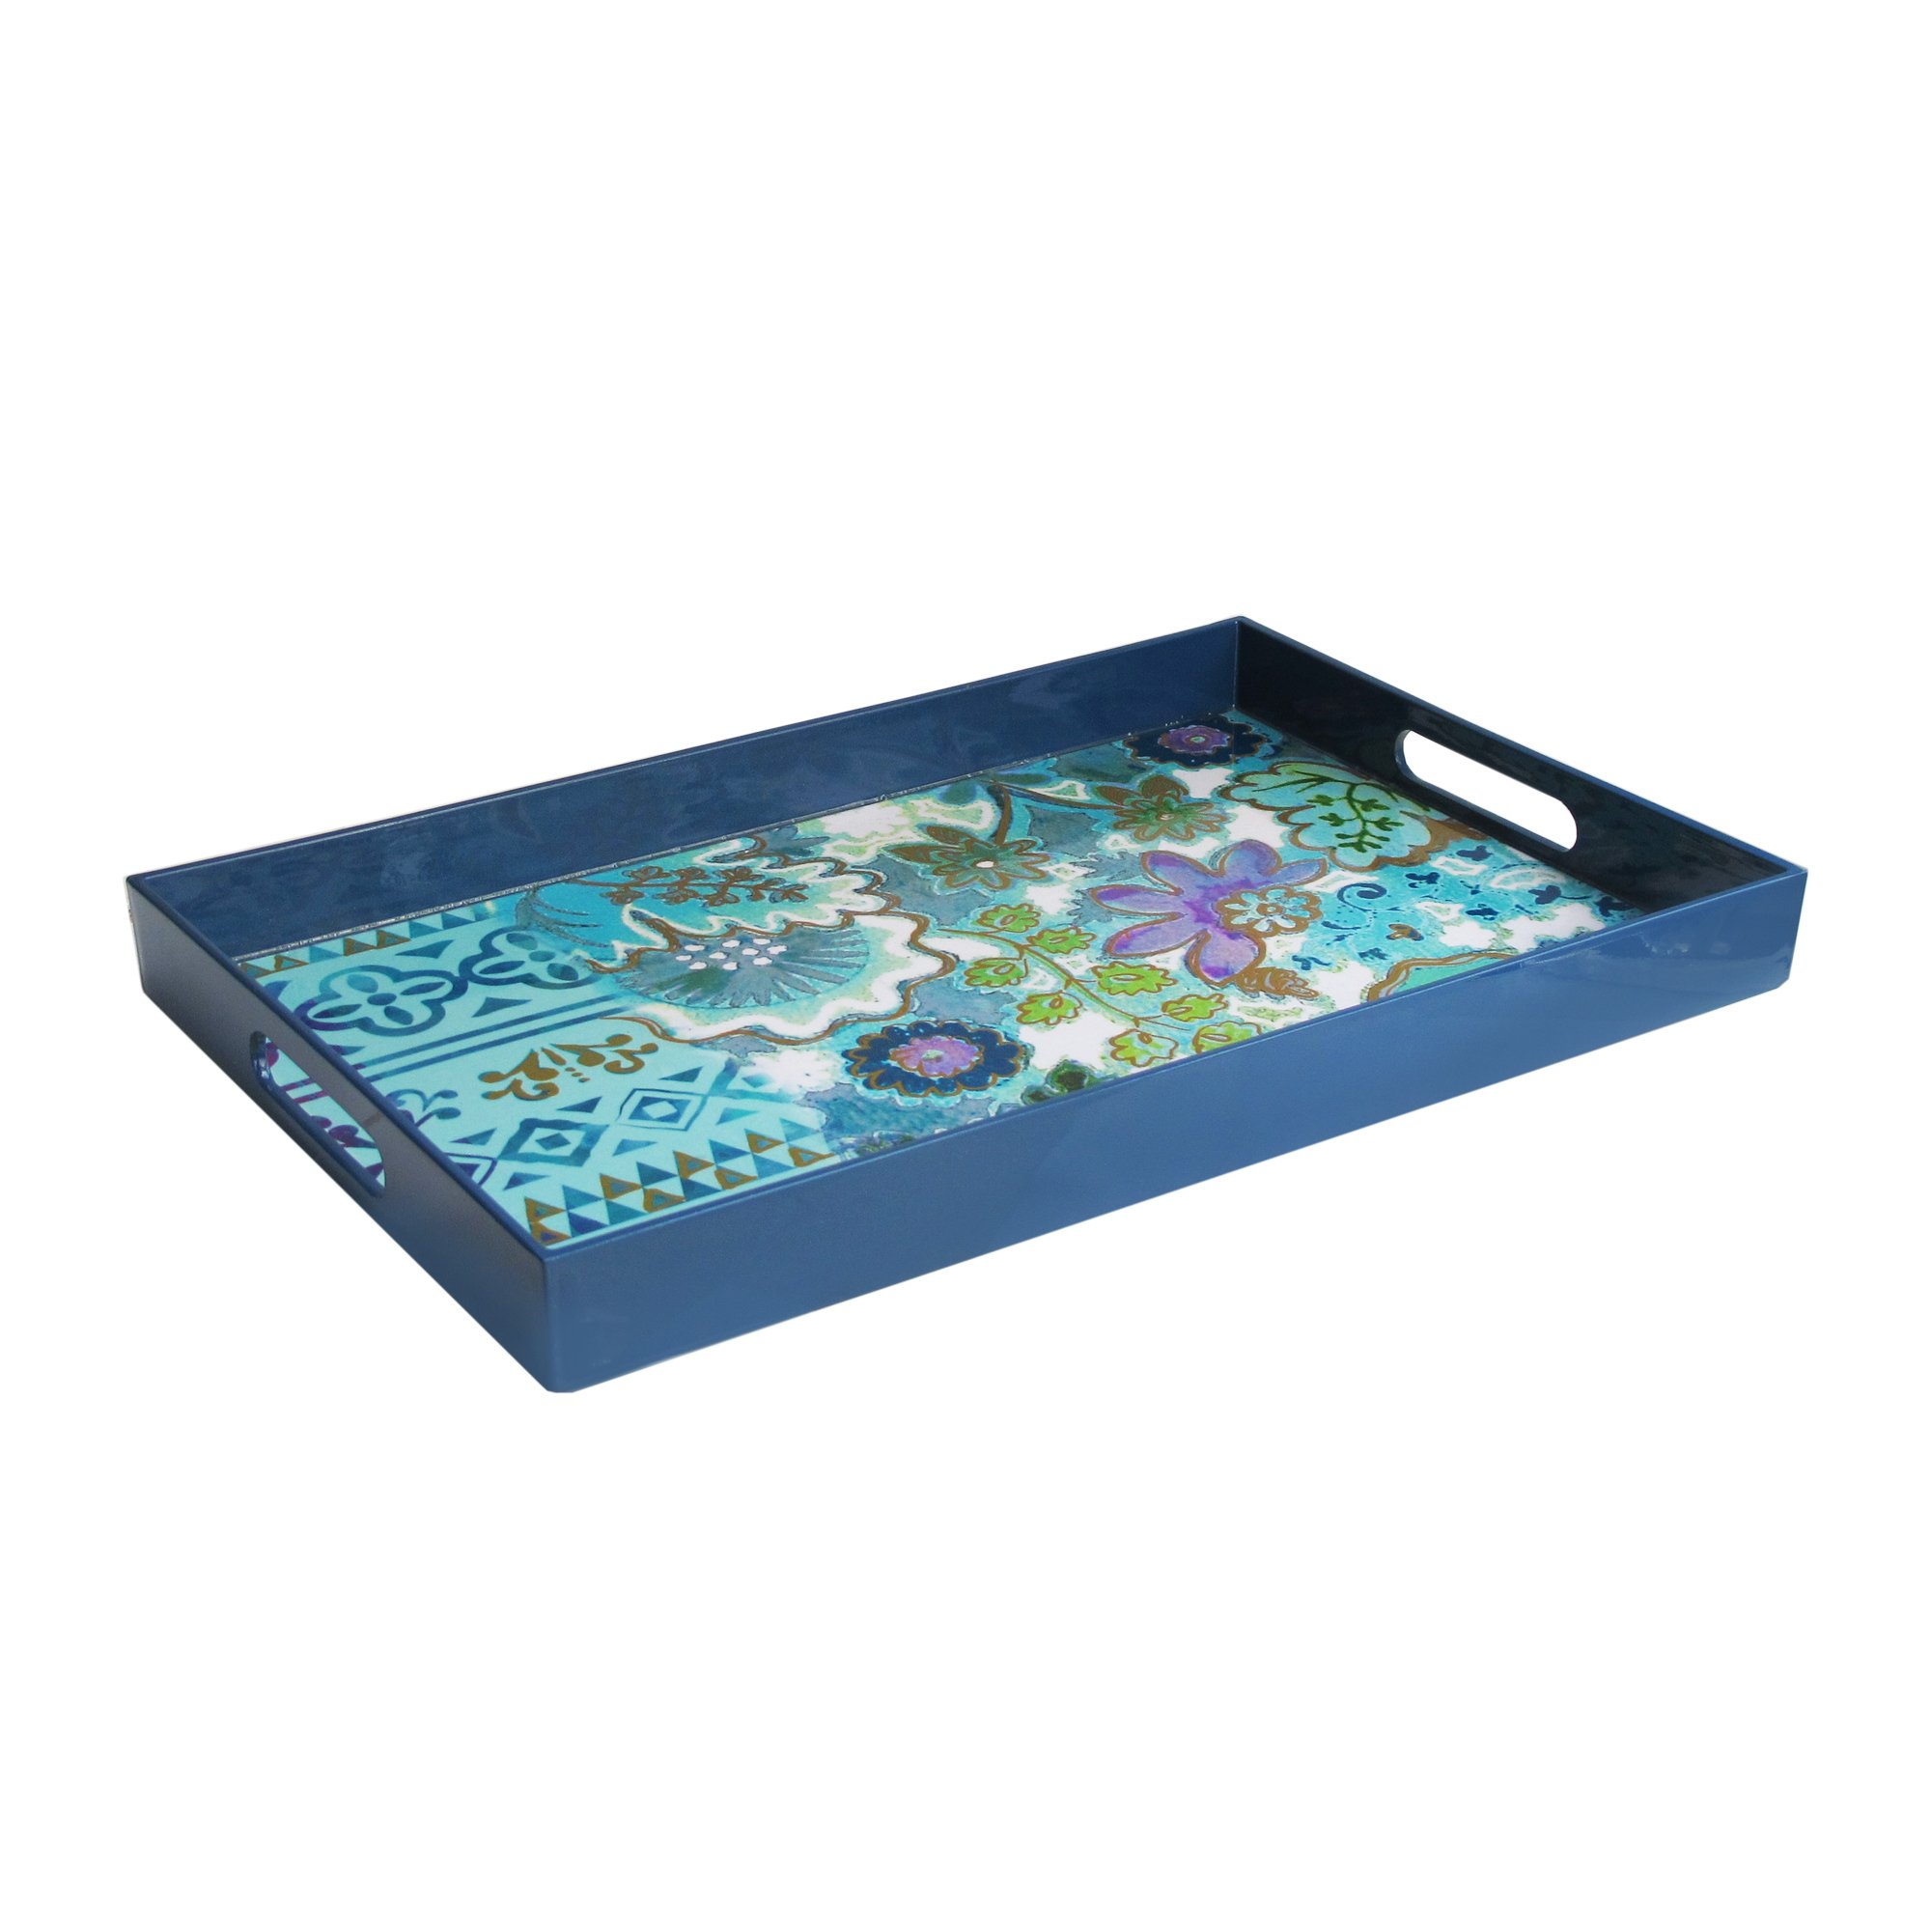 Tracy Porter 1270399 Rectangle Tray with Handles, Navy/Blue